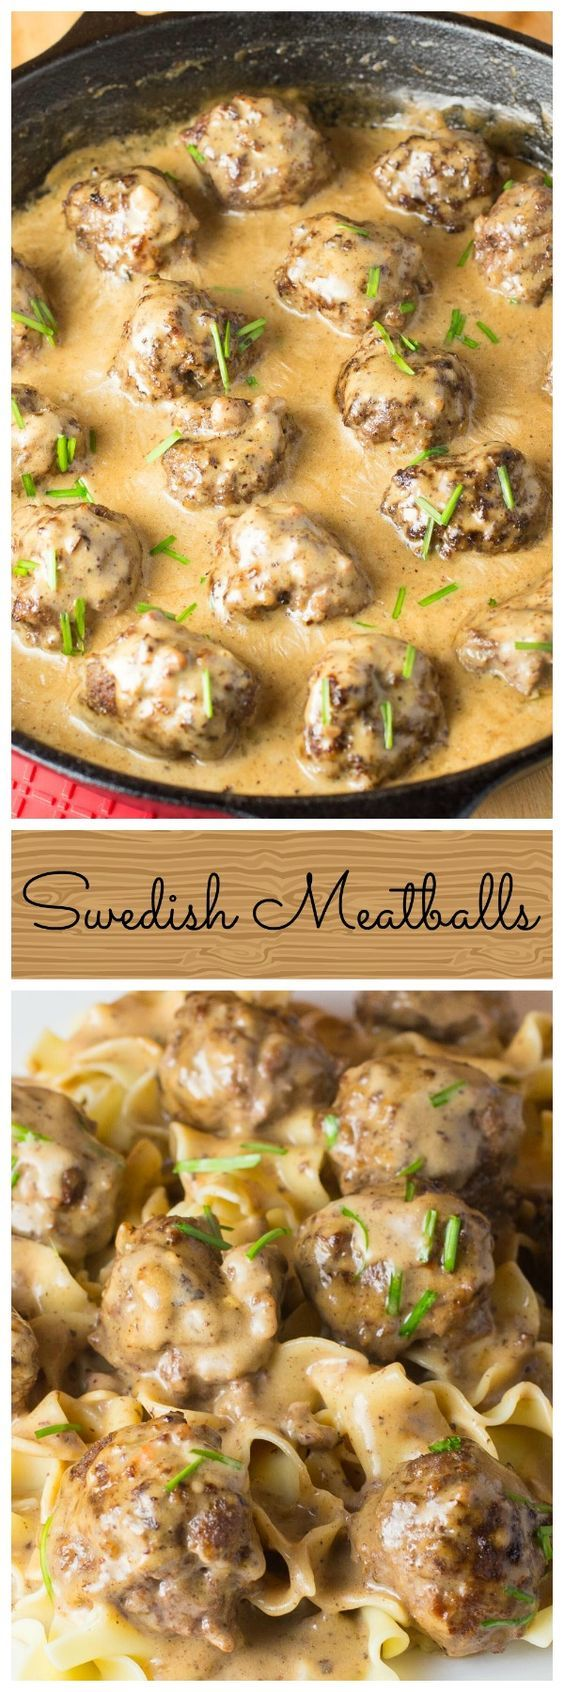 how to make swedish meatballs youtube